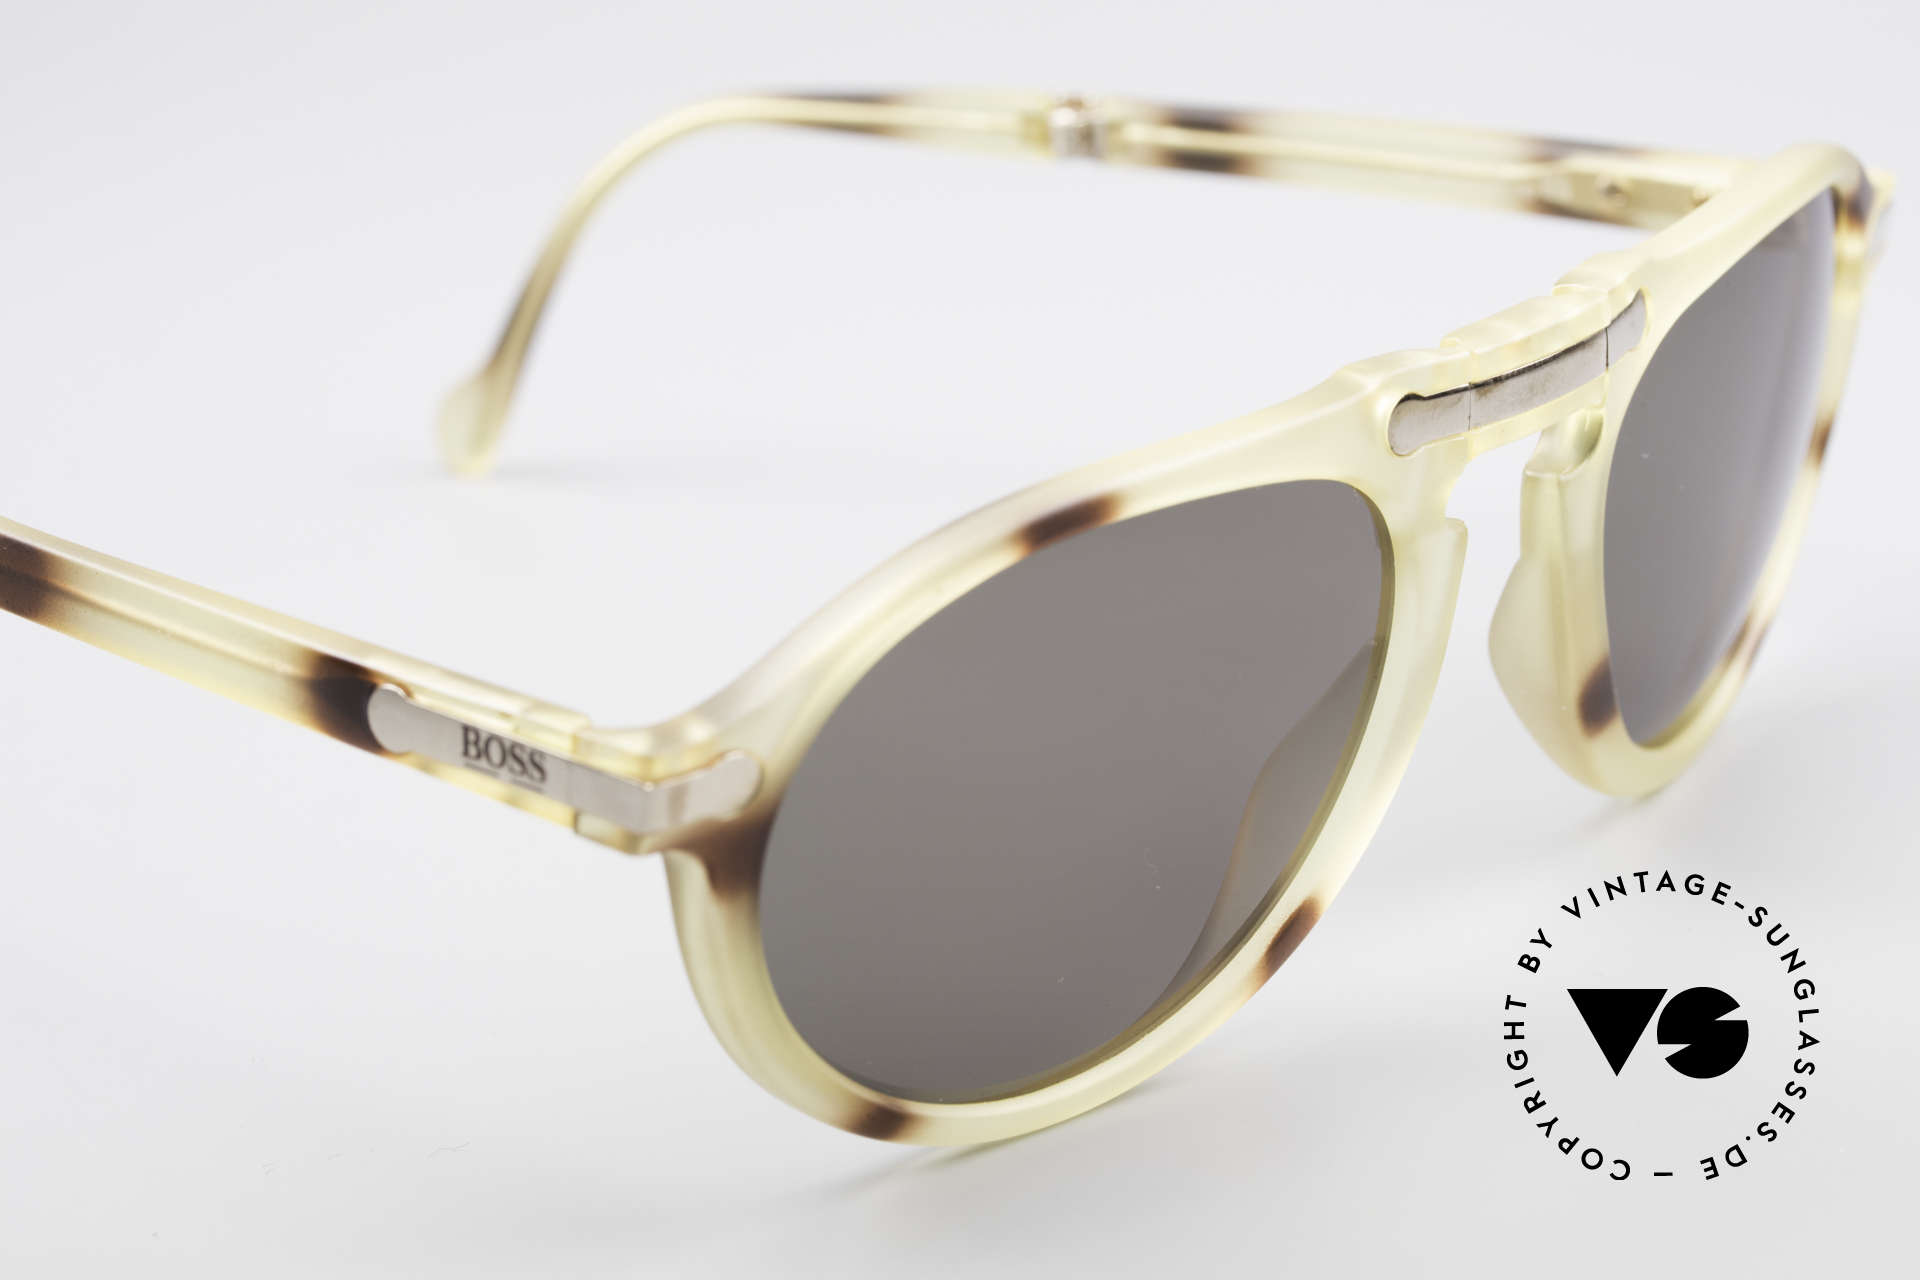 BOSS 5153 Vintage Folding Sunglasses 90's, NO retro fashion, but an authentic timeless classic, Made for Men